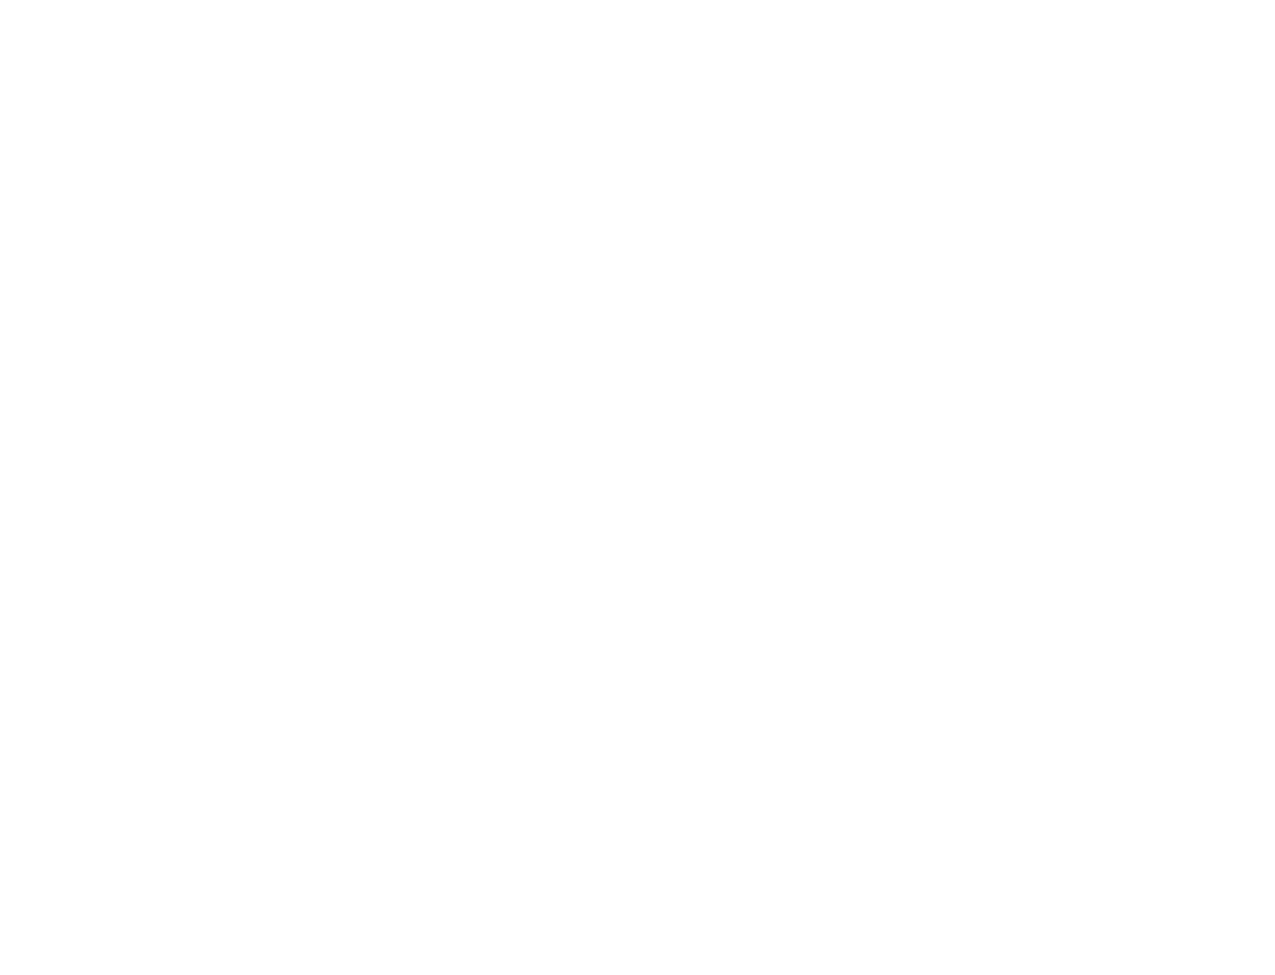 802 Productions